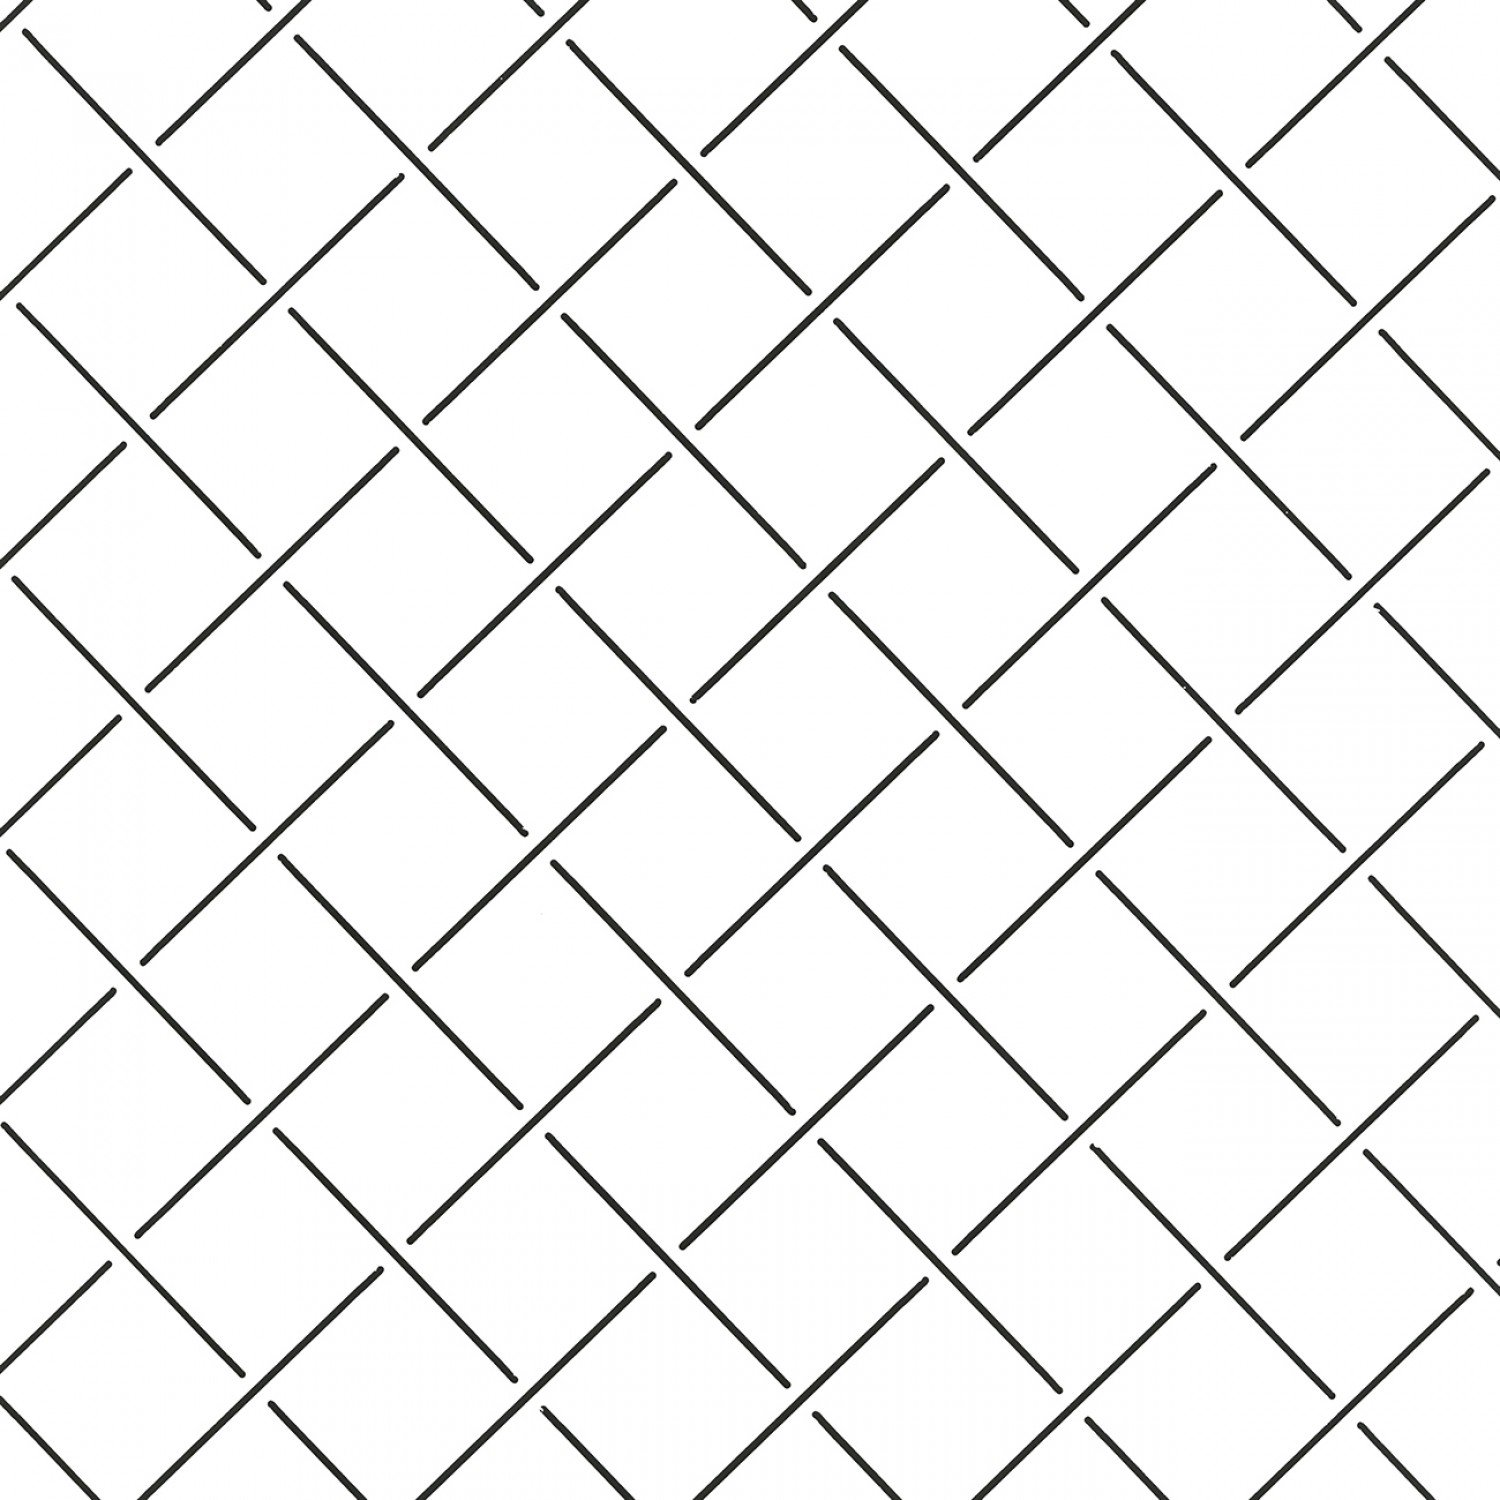 QUILT STENCIL ALL OVER GRID 1.5IN